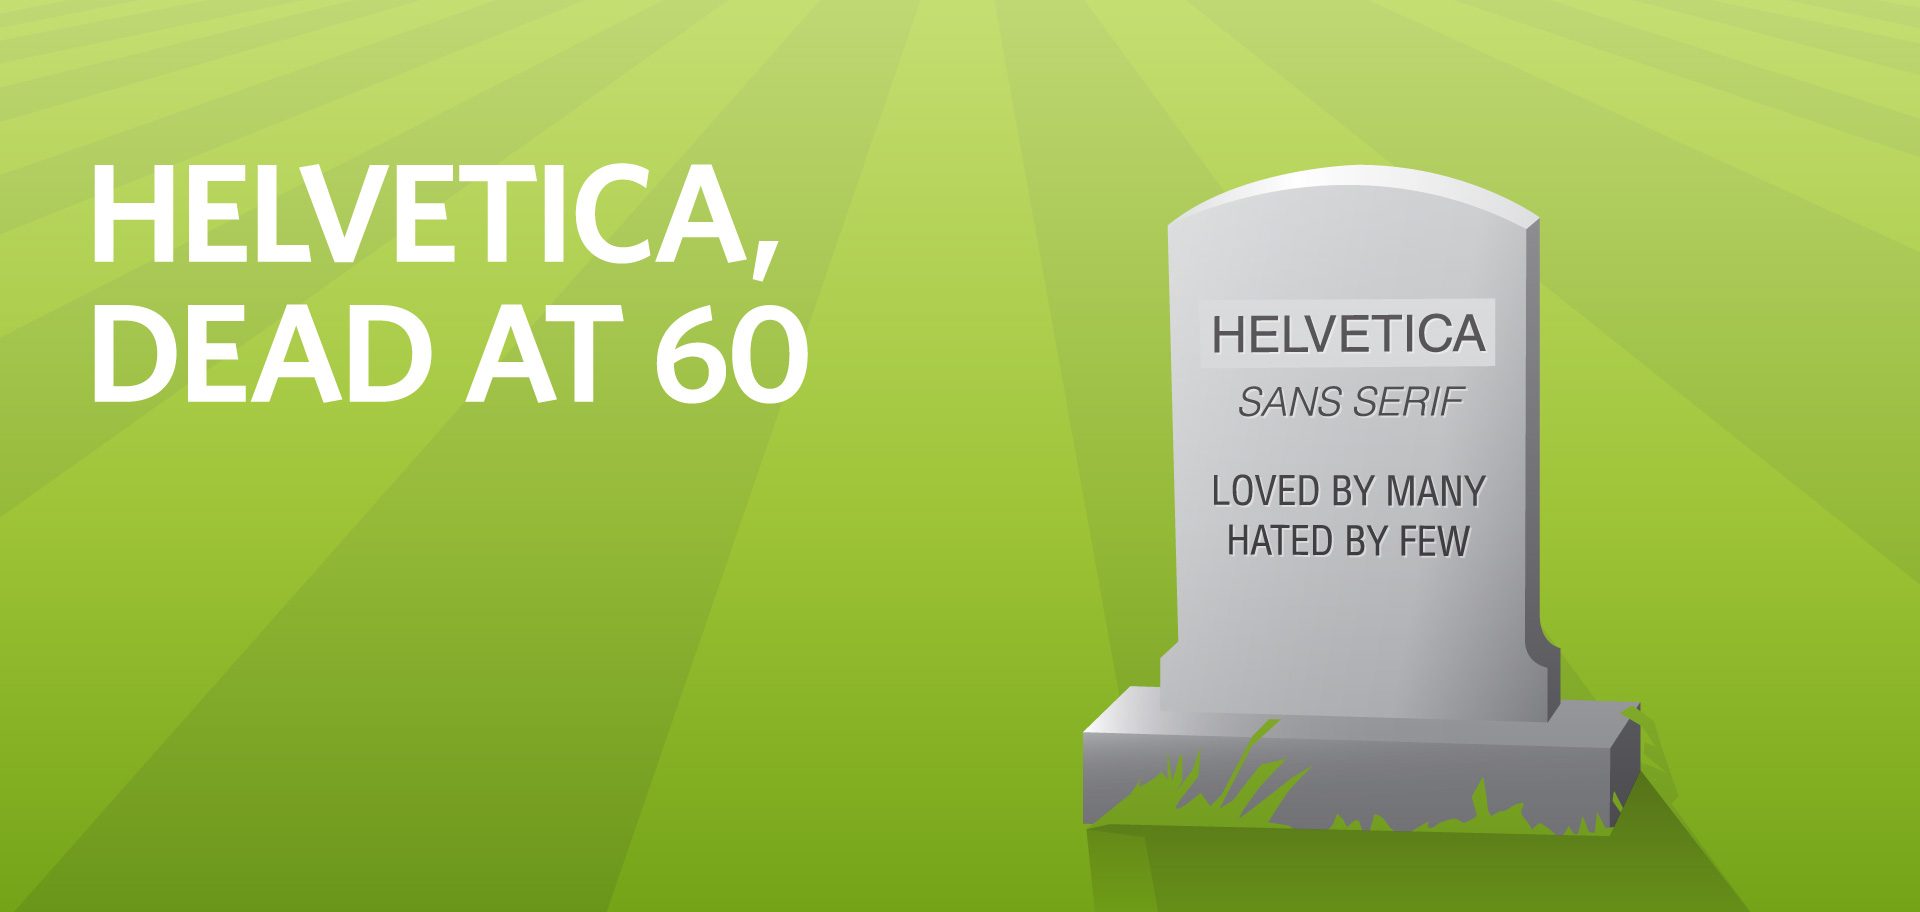 Kettle Fire Creative Helvetica Dead at 60 history font typeface helvetica Helvetica, Dead at 60 helvetica fi